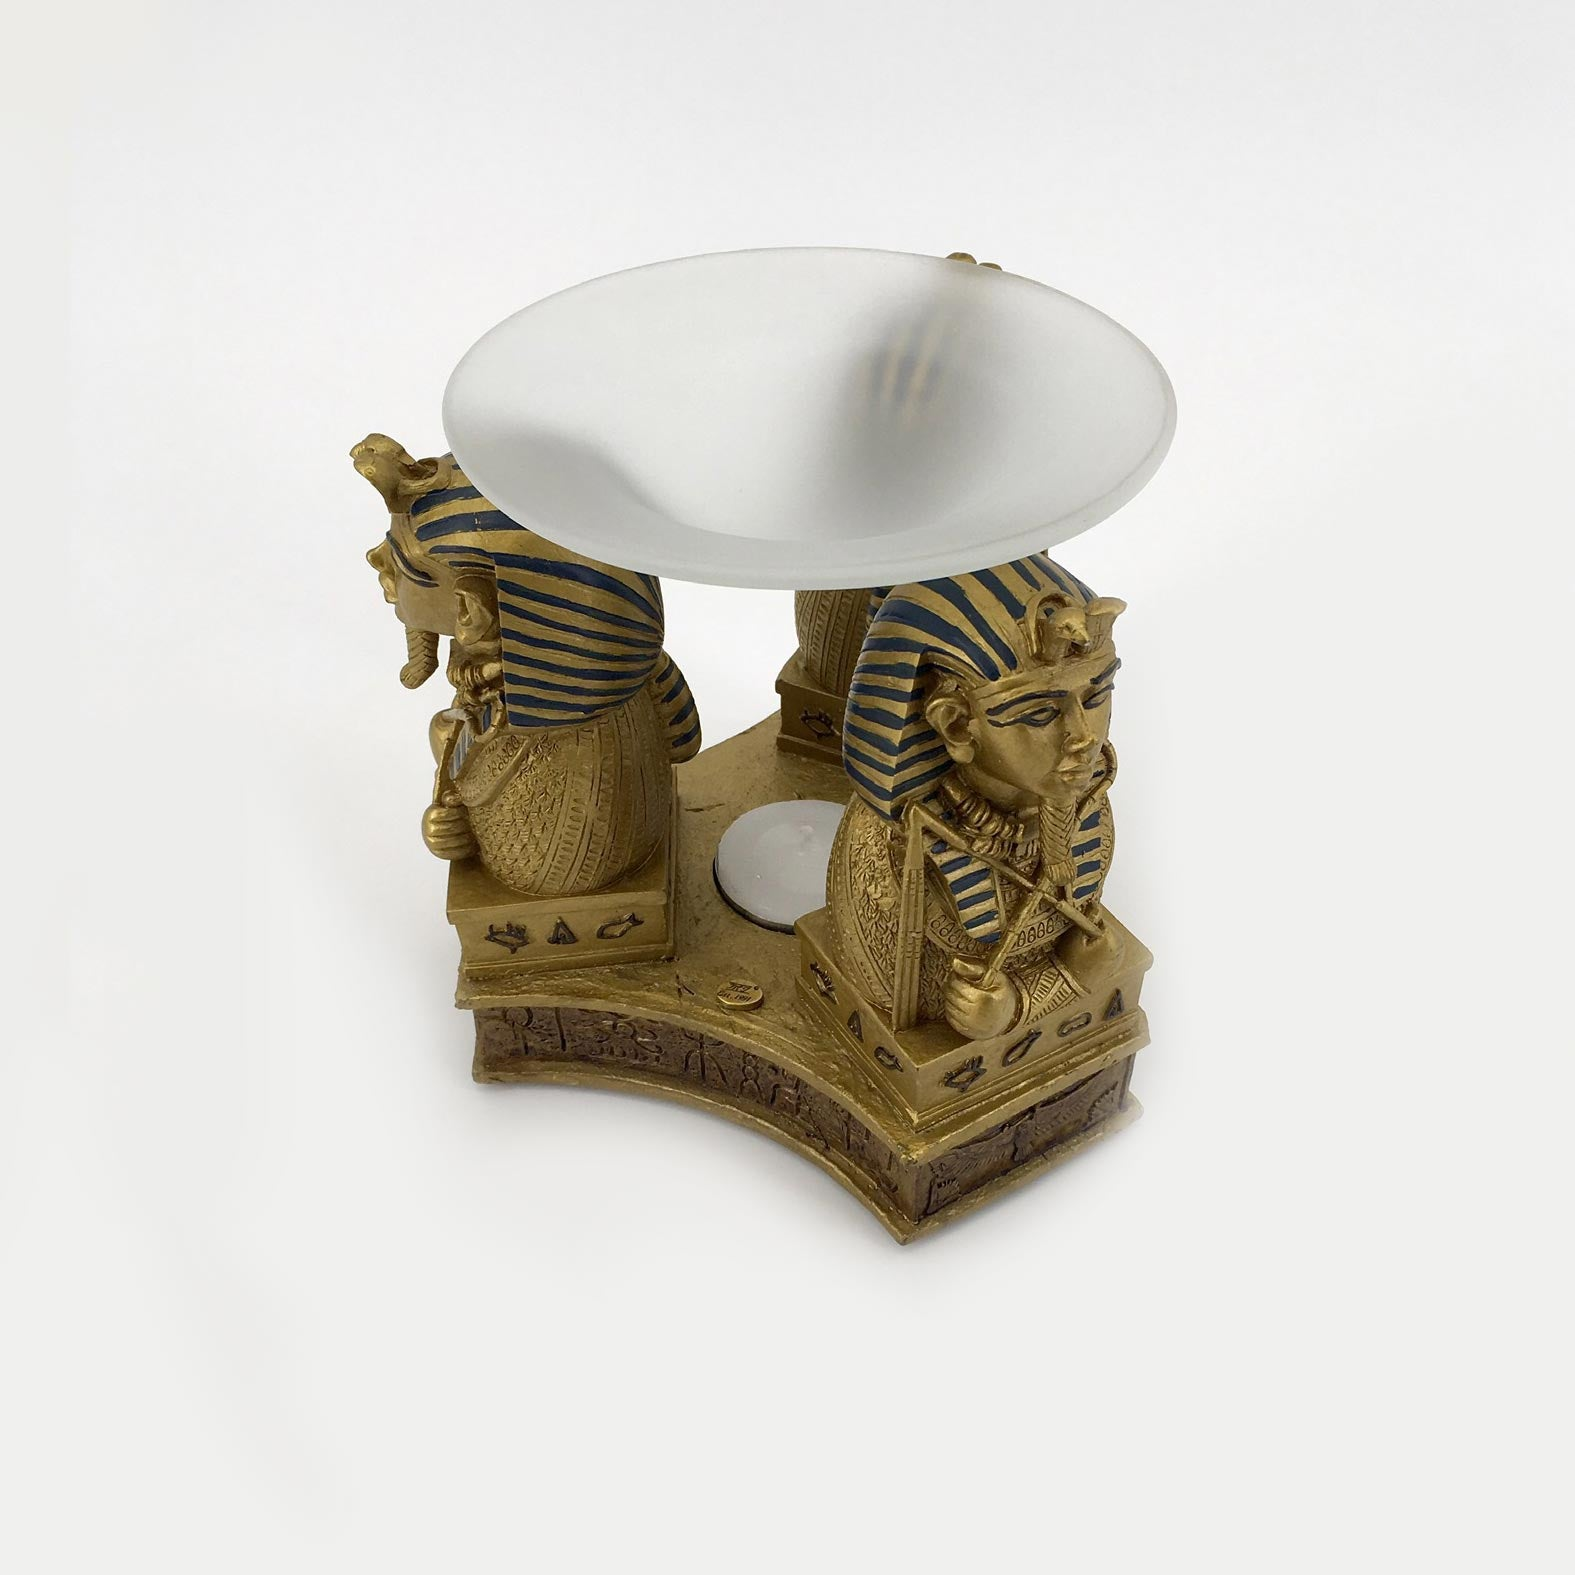 KING TUT BUST OIL BURNER